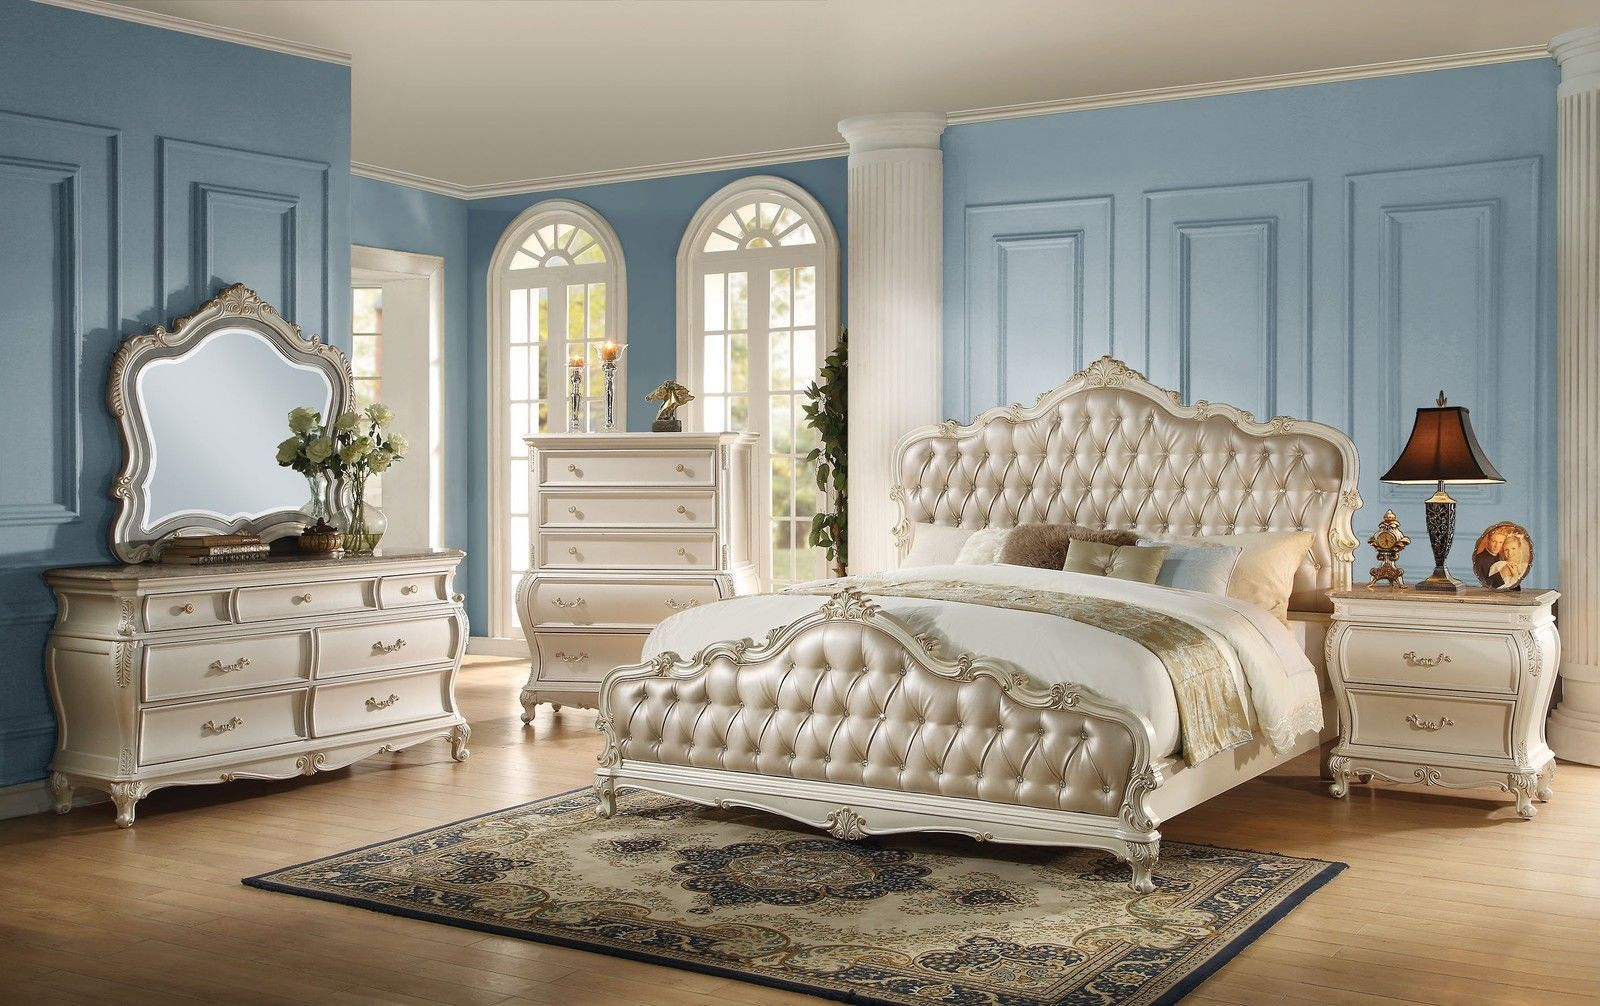 of tufted image king white leather design set elegant editeestrela dream bedroom